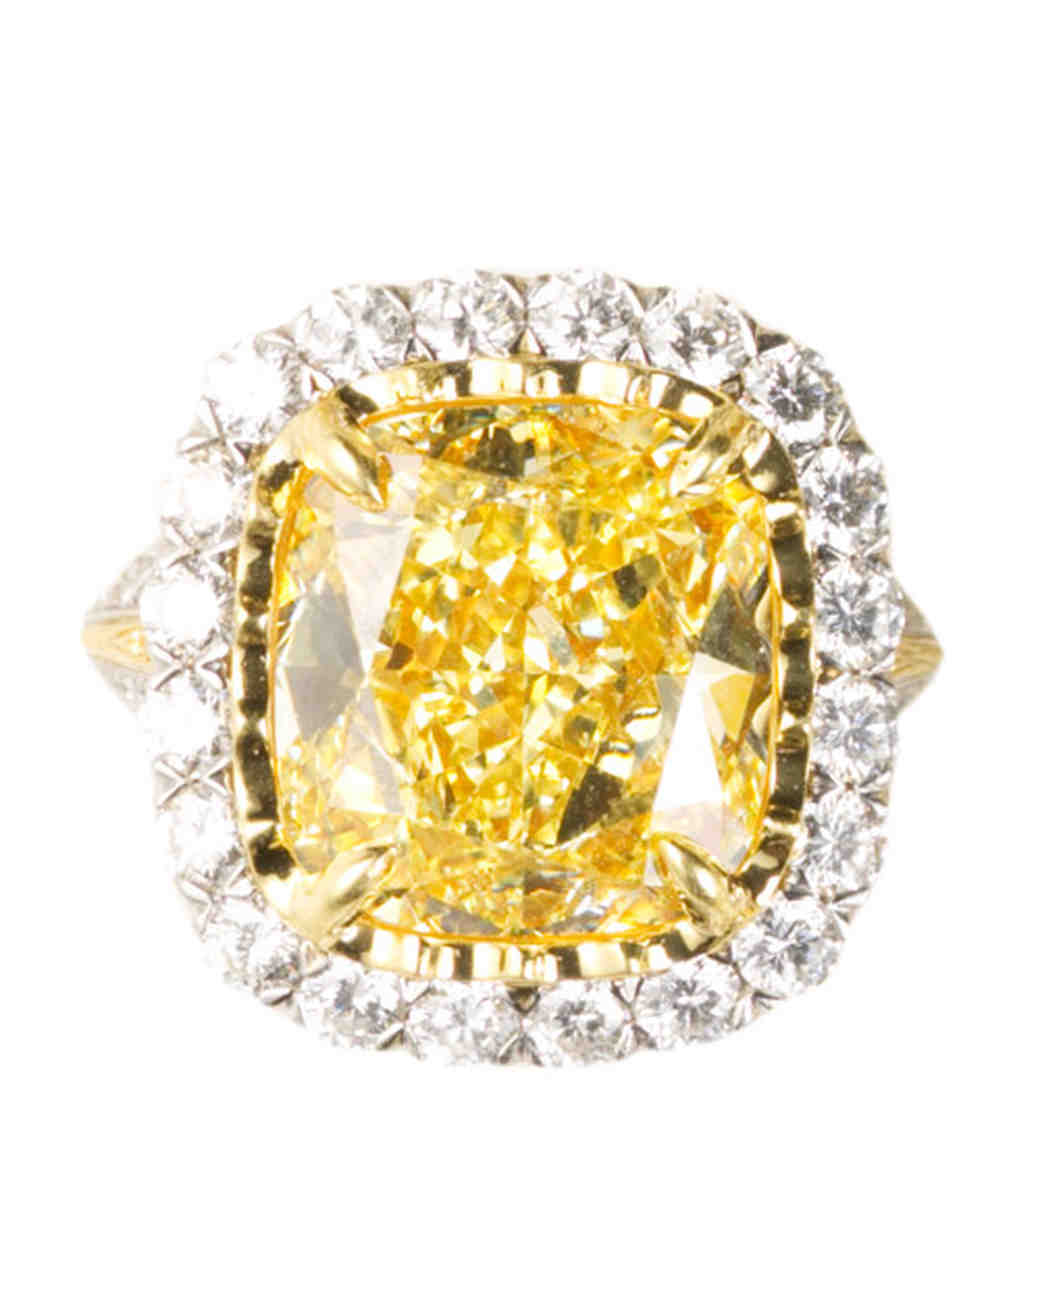 msw_sum10_yellow_ring_christopher.jpg